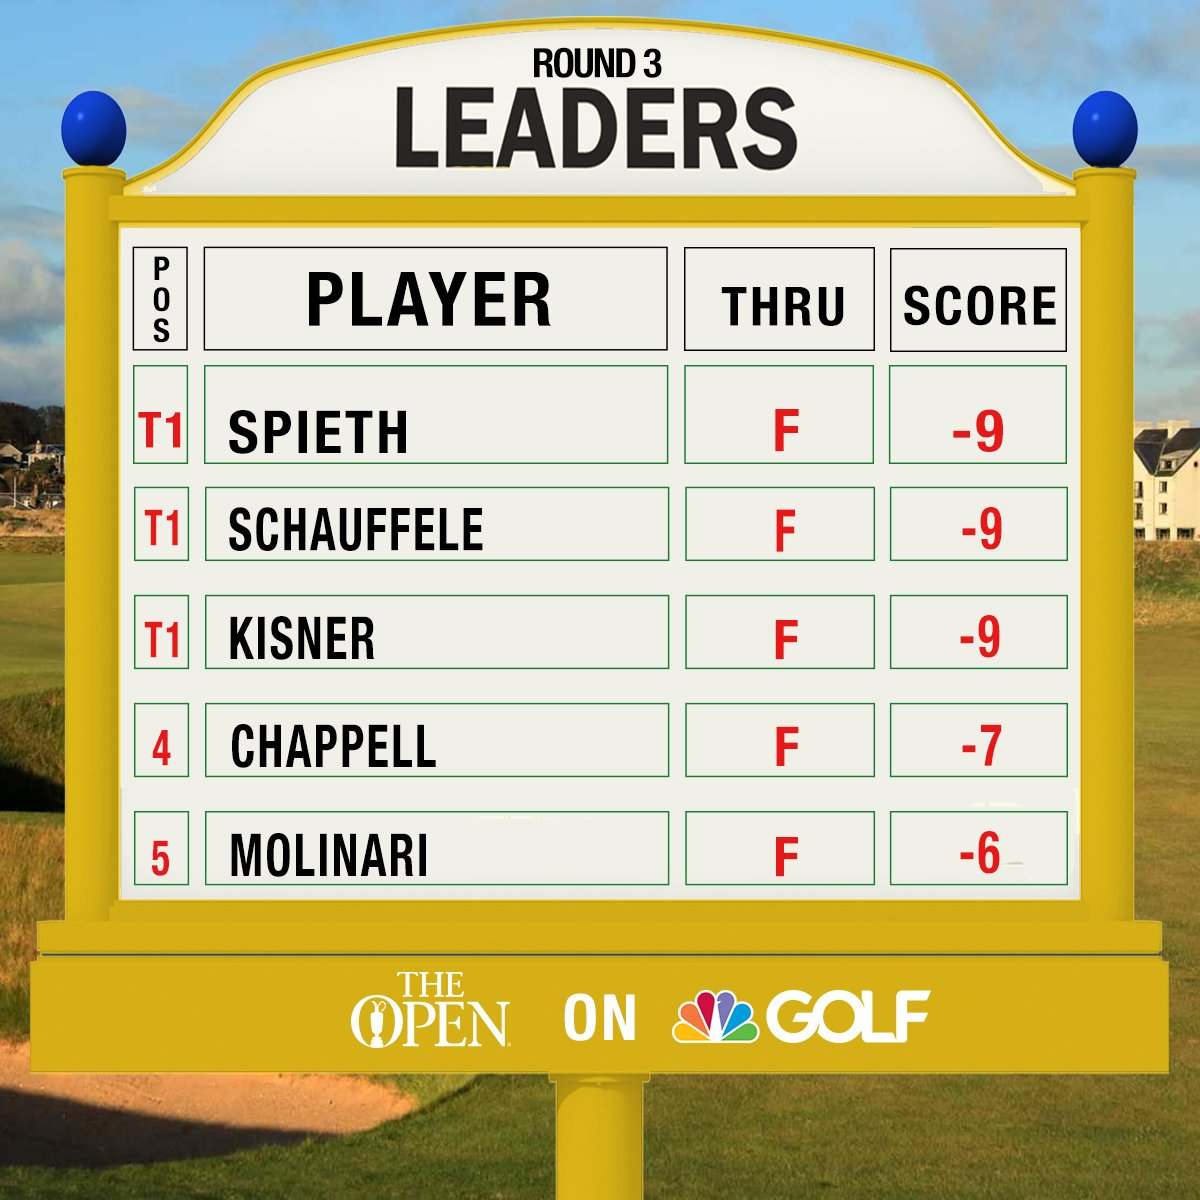 Three-way tie atop the leaderboard. Who comes out on top tomorrow? #TheOpen Scores: https://t.co/edPMLscpqT